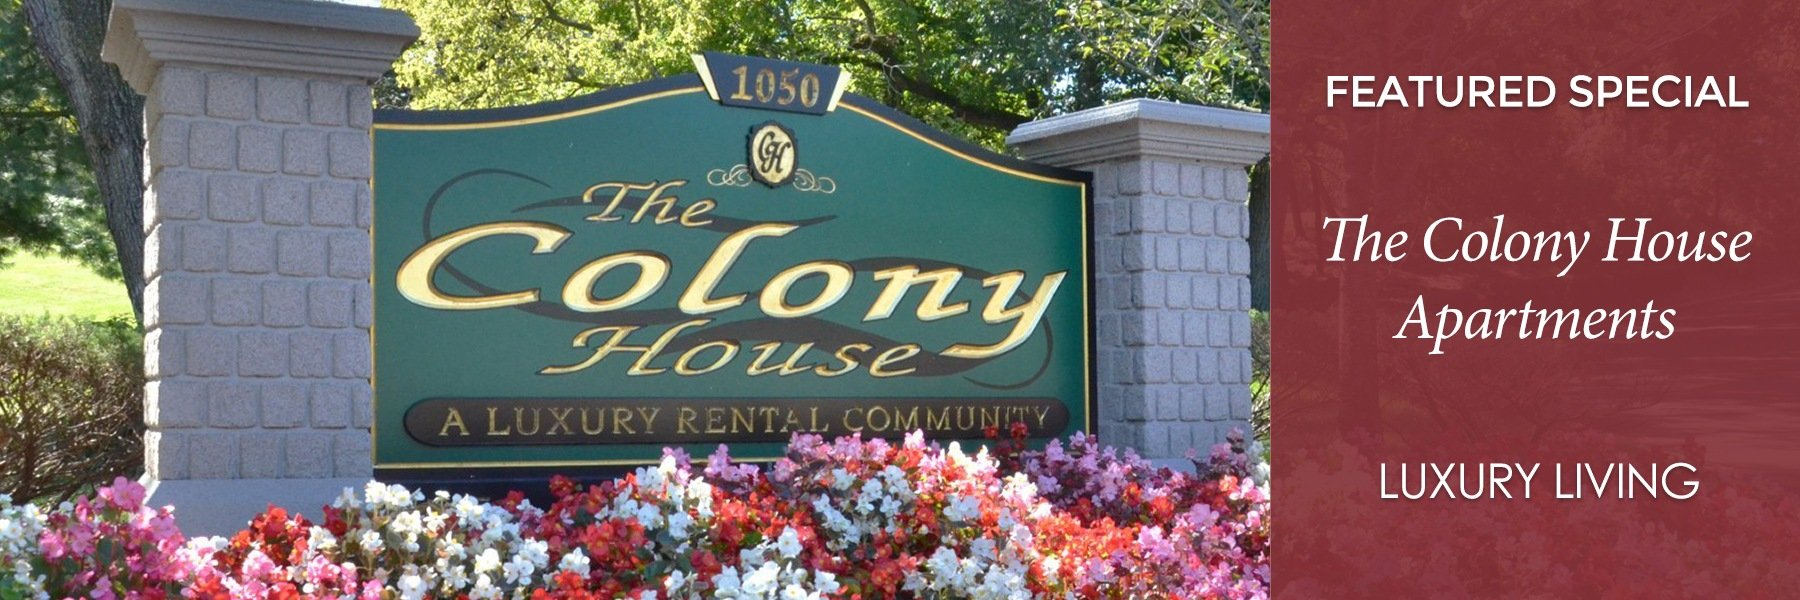 The Colony House Apartments For Rent in New Brunswick, NJ